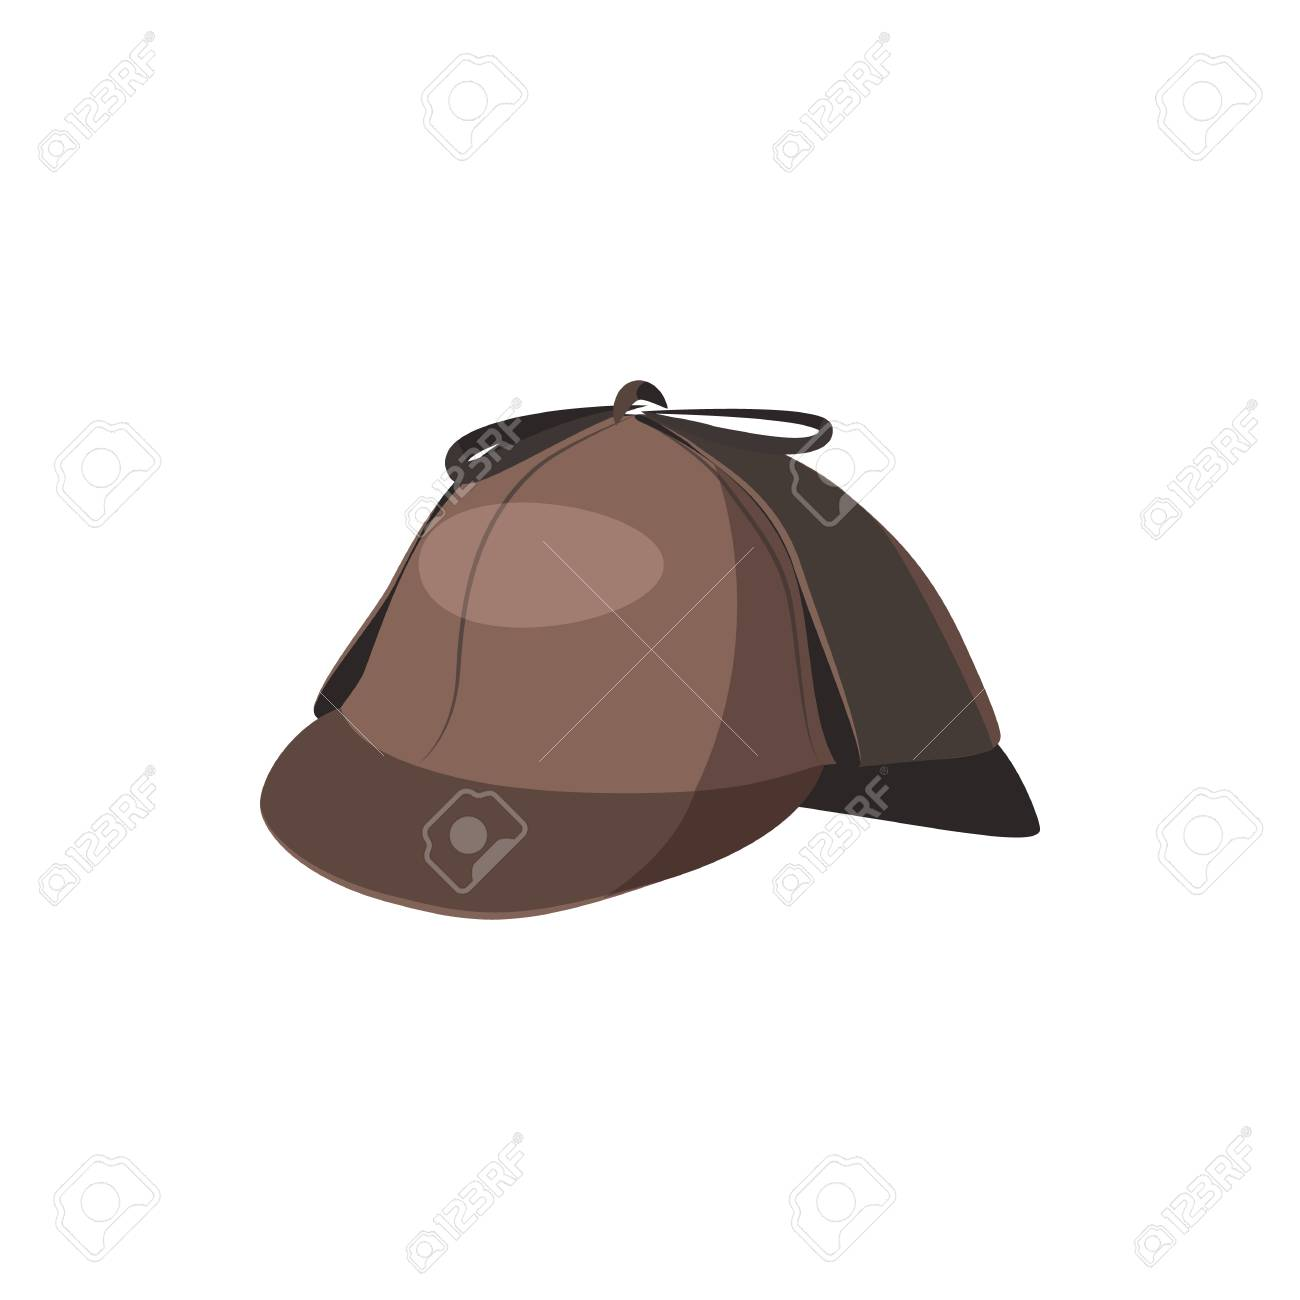 Detective Hat Icon Cartoon Style Stock Photo Picture And Royalty Free Image Image 105975304 Find the perfect detective hat stock illustrations from getty images. detective hat icon cartoon style